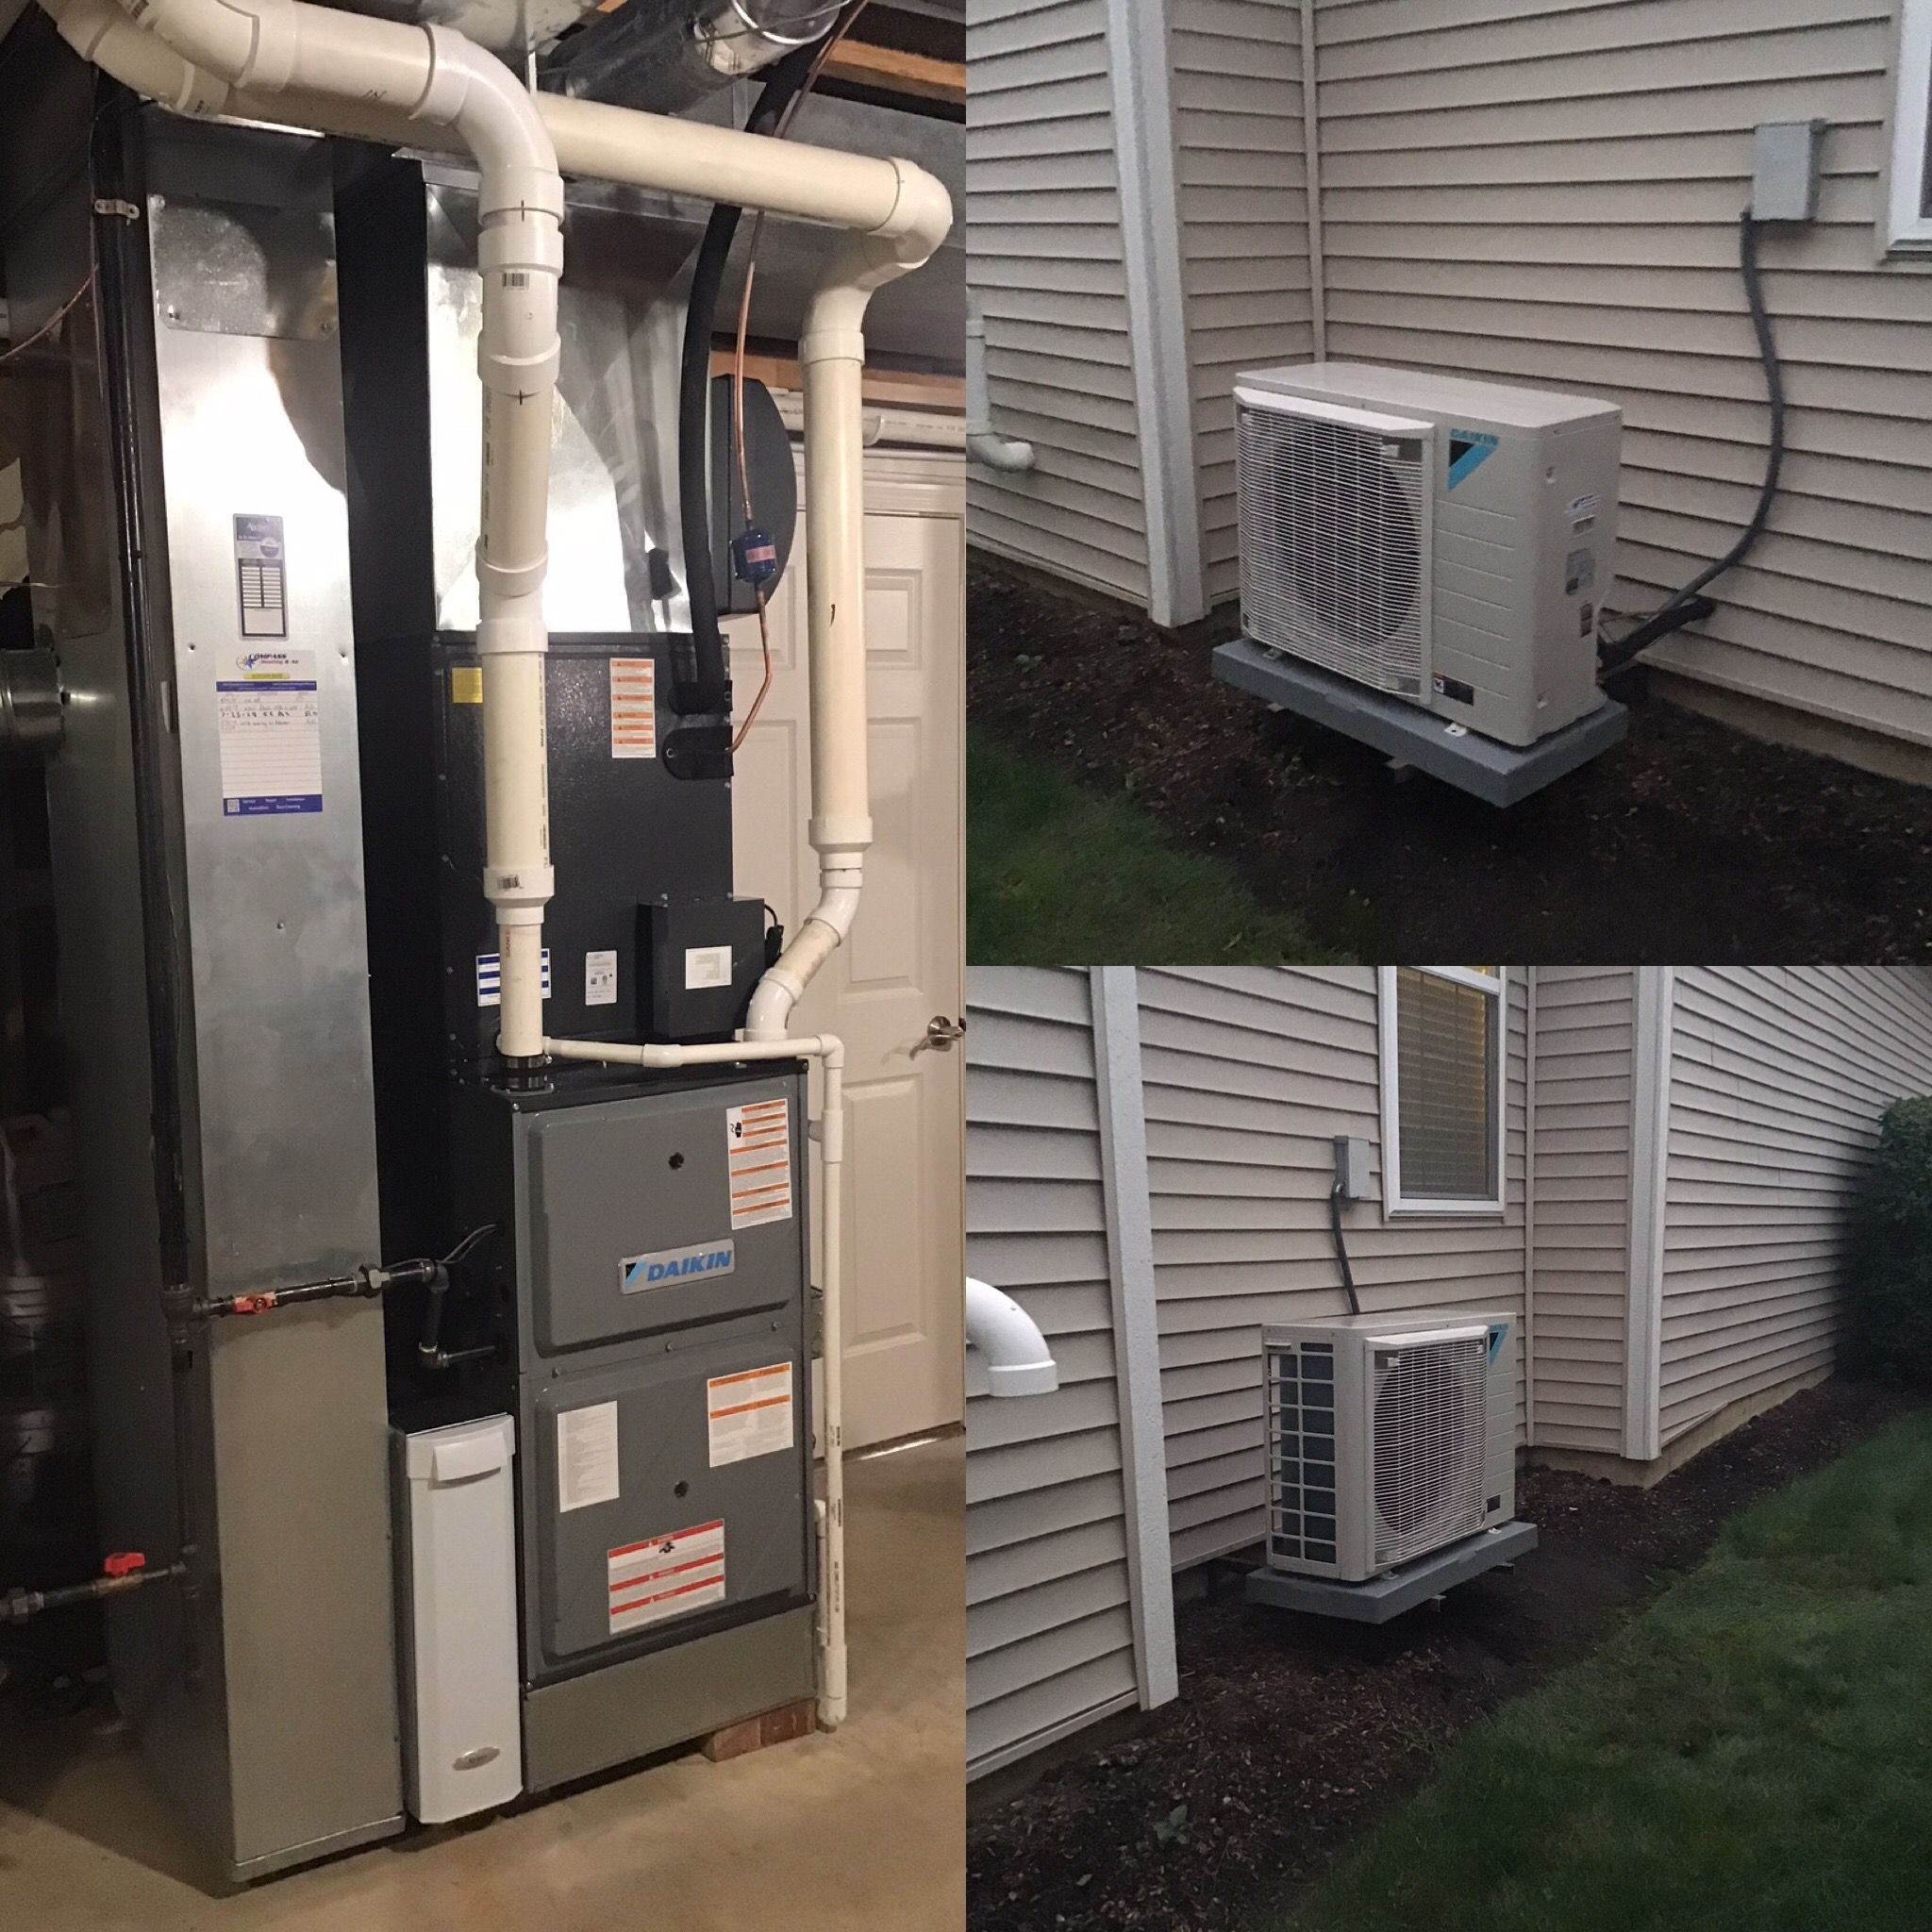 Daikin Fit And Modulating Furnace Heating And Air Conditioning Central Air Conditioning Repair Air Conditioning Equipment